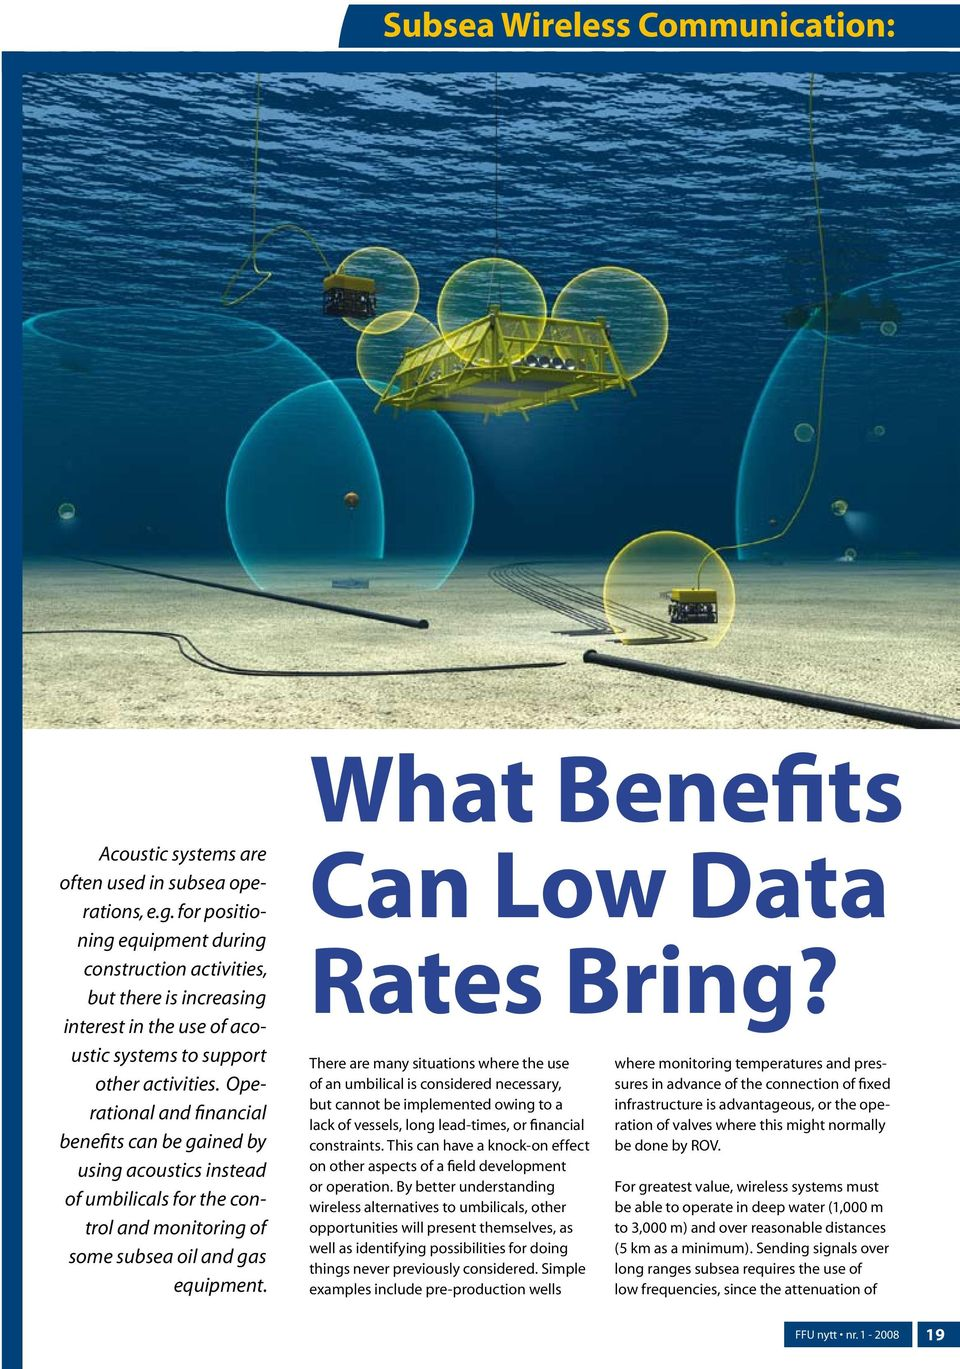 Operational and financial benefits can be gained by using acoustics instead of umbilicals for the control and monitoring of some subsea oil and gas equipment. What Benefits Can Low Data Rates Bring?